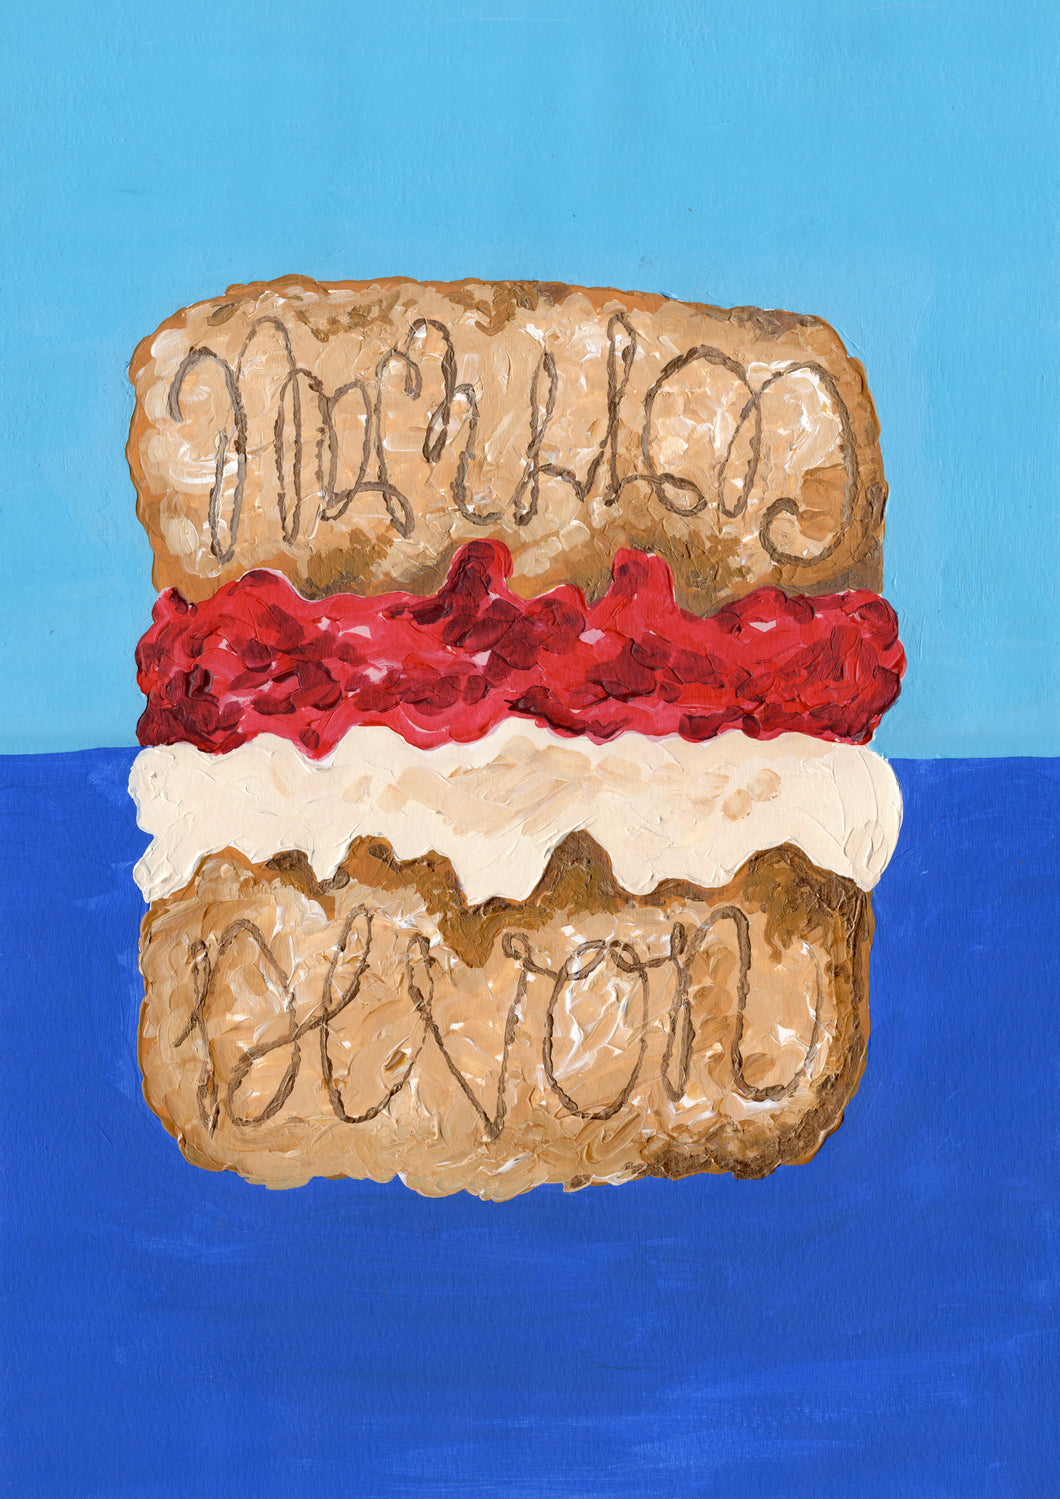 'Cream or Jam' Scone Illustration